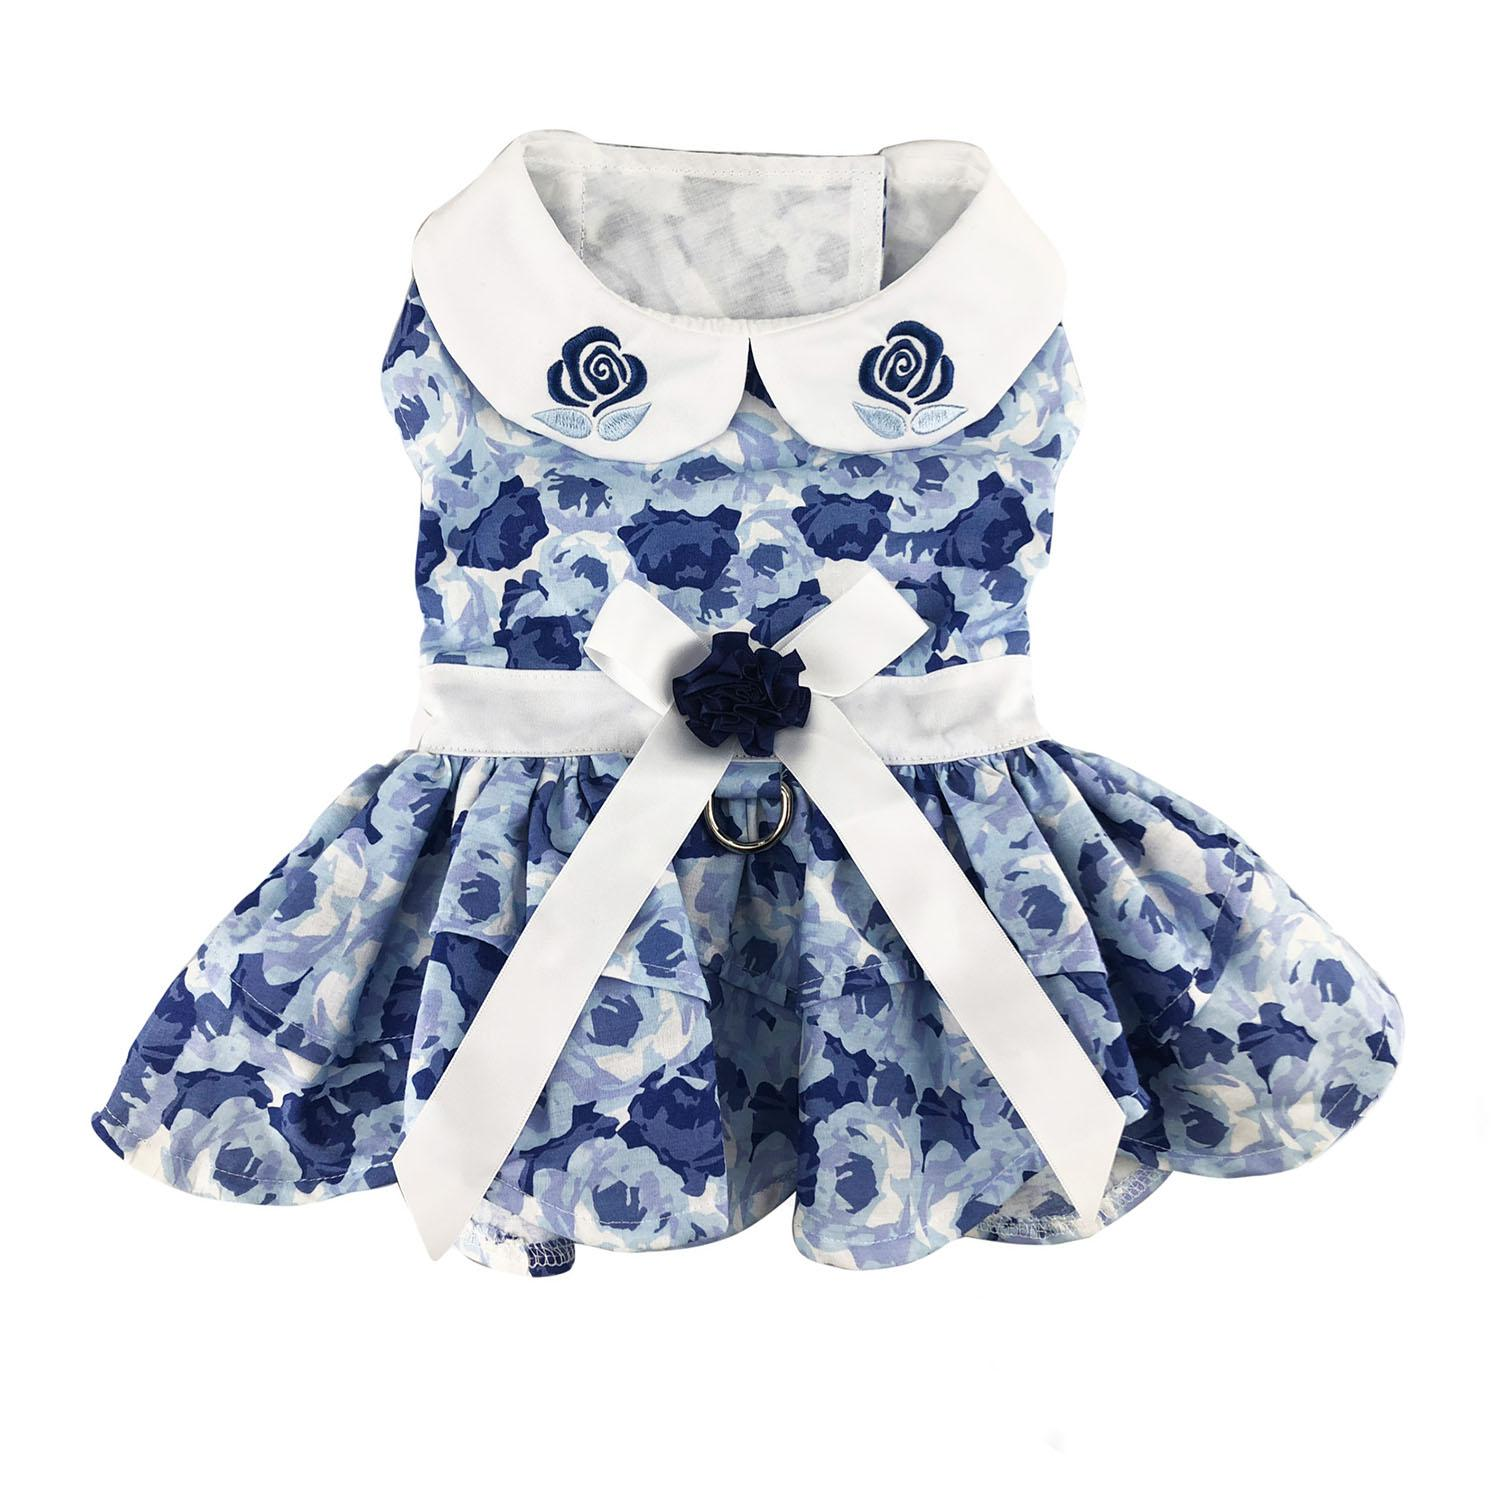 Blue Rose Dog Harness Dress with Matching Leash by Doggie Design